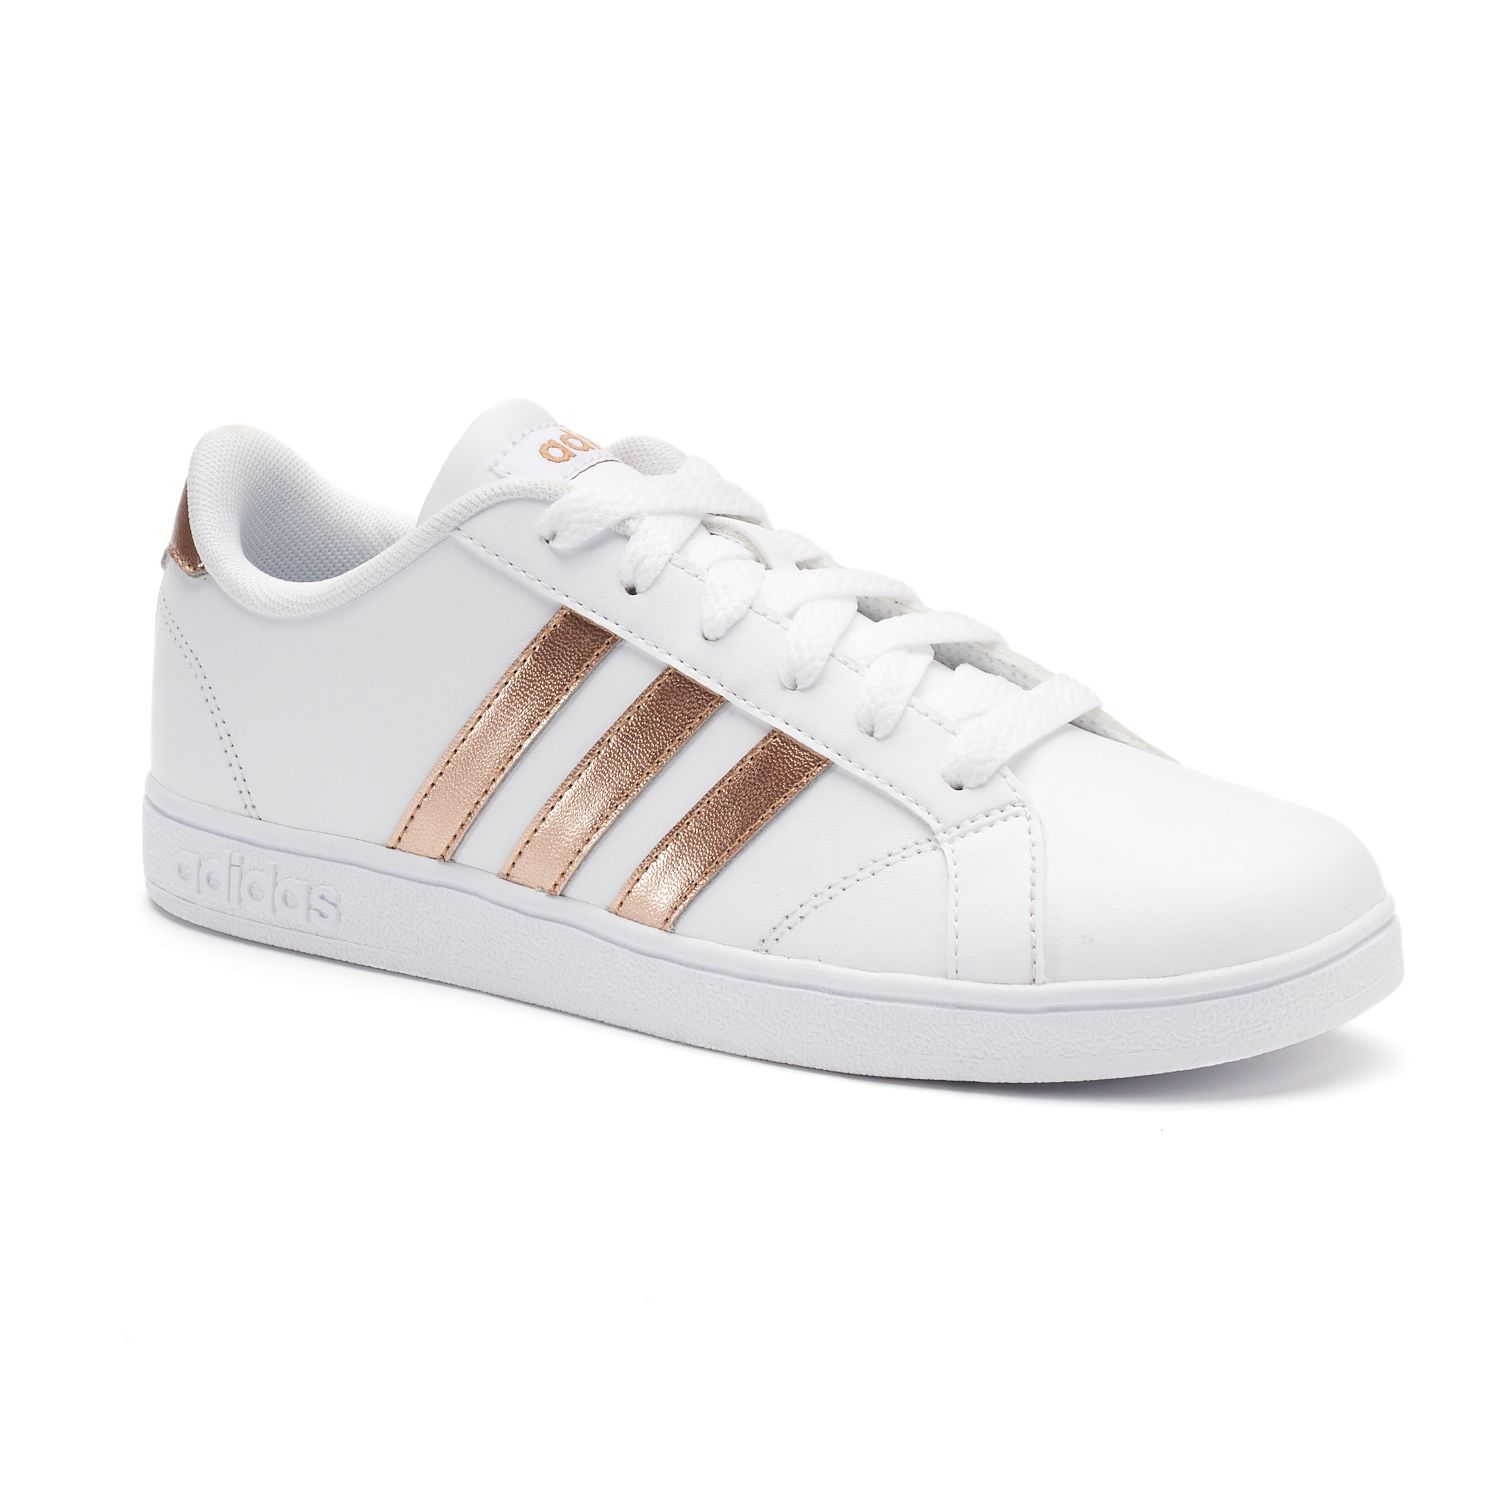 cute adidas shoes for girls pink halo adidas shoes for girls black and pink